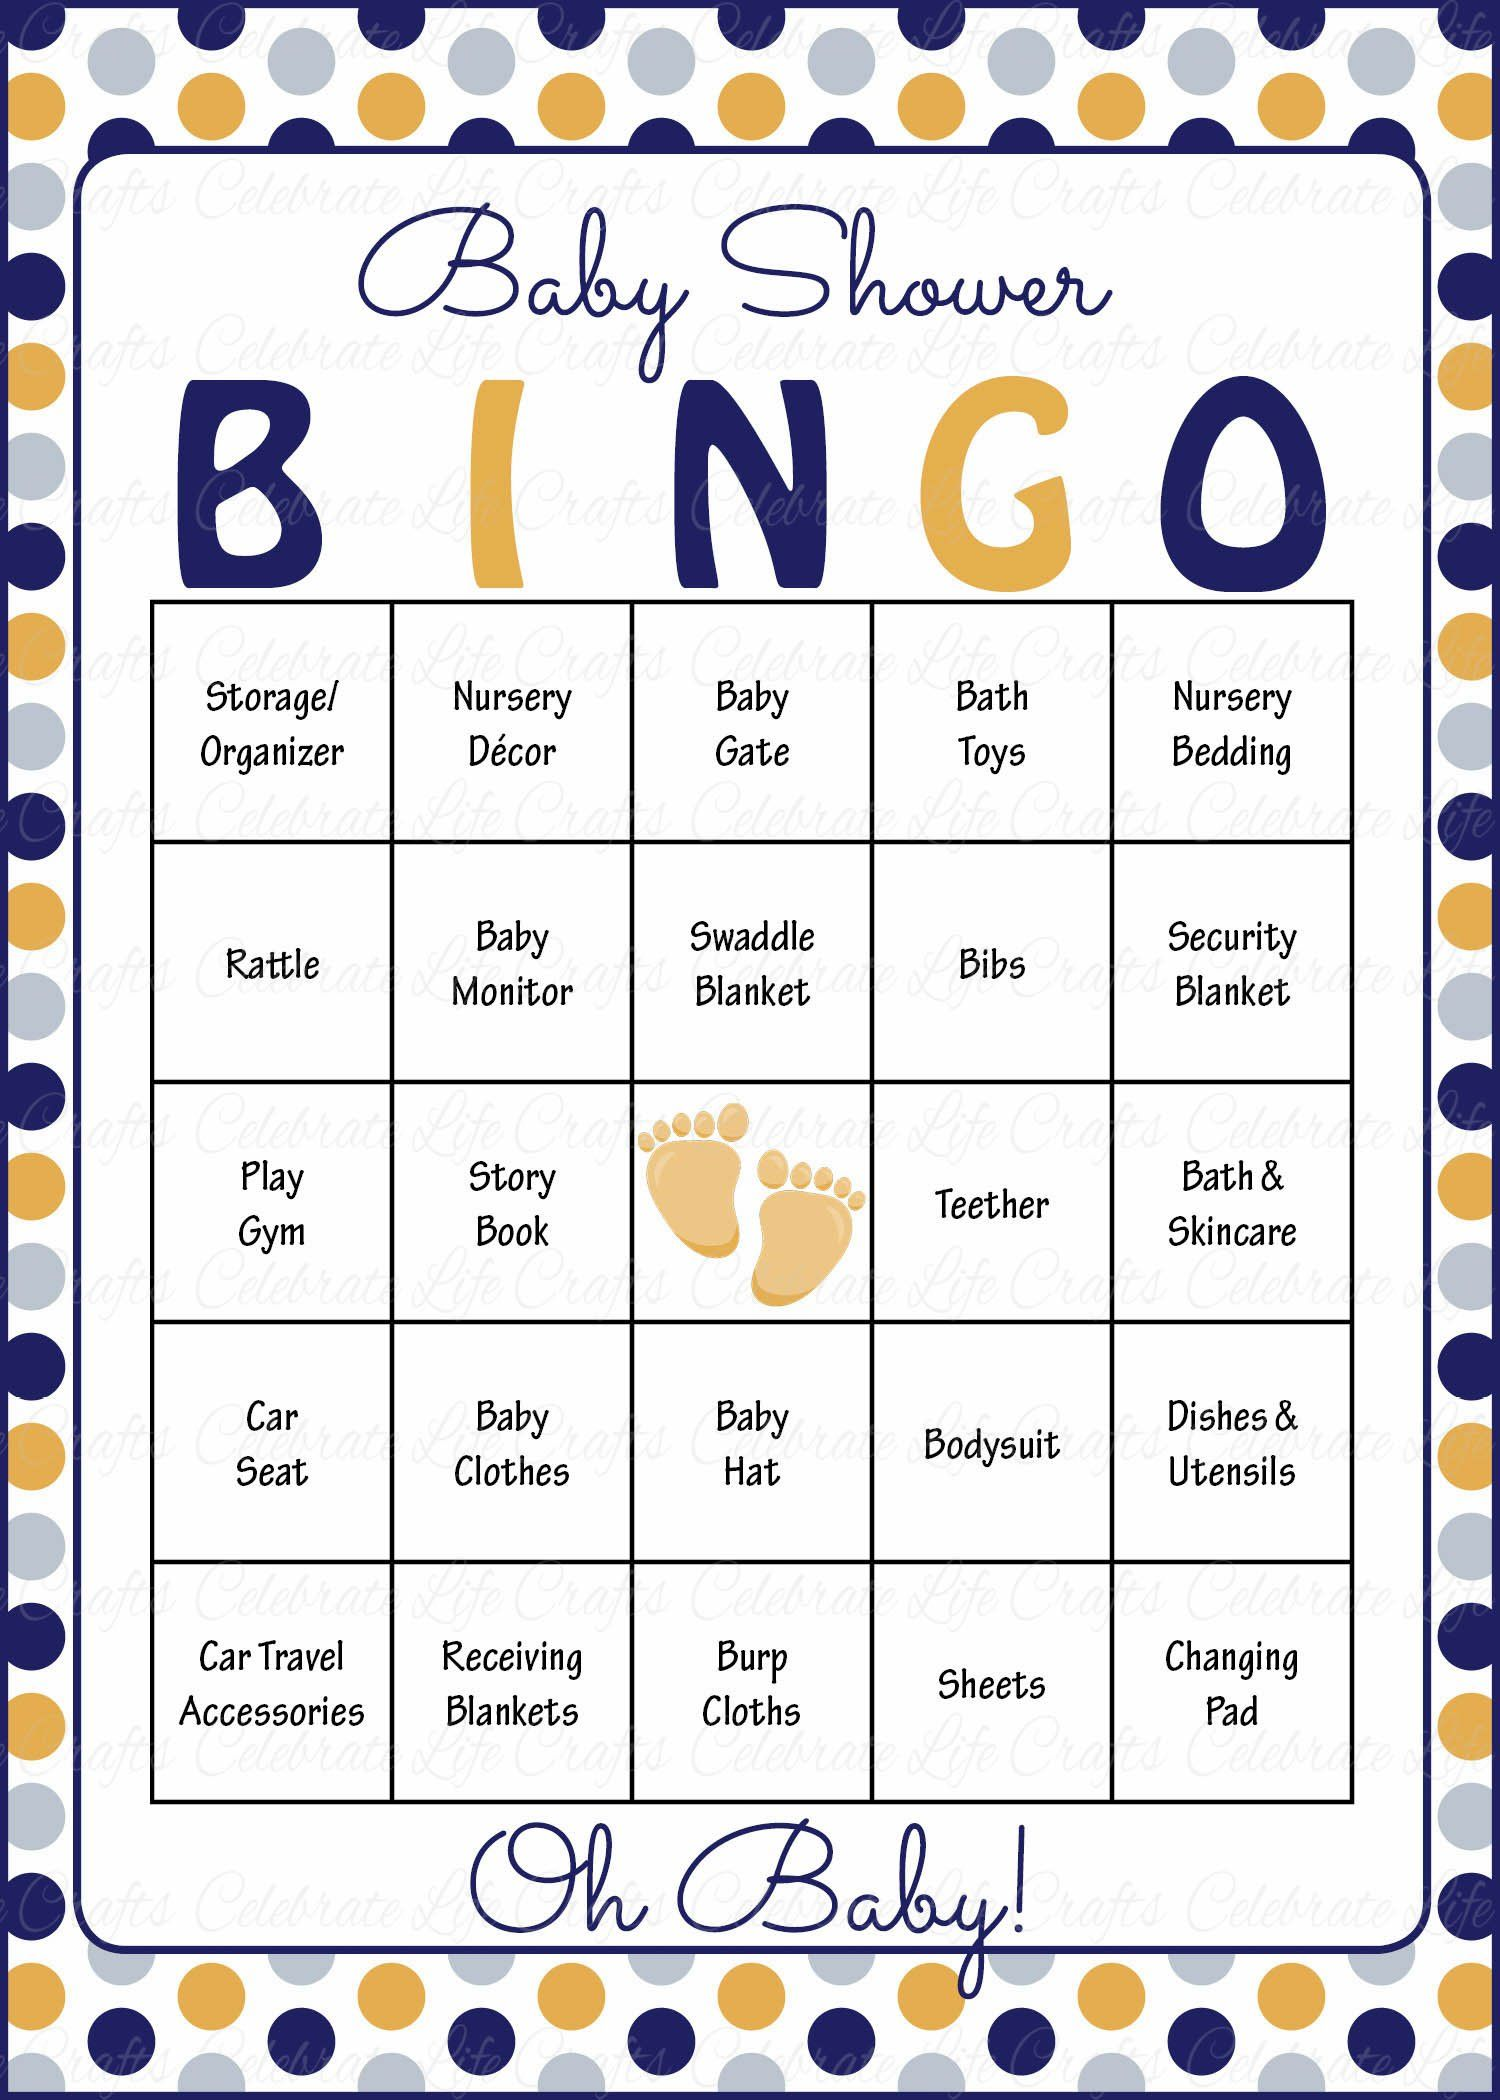 Oh Baby Shower Game Download For Boy Baby Bingo Celebrate Life Crafts Baby Shower Bingo Baby Shower Bingo Free Baby Shower Bingo Free Printable